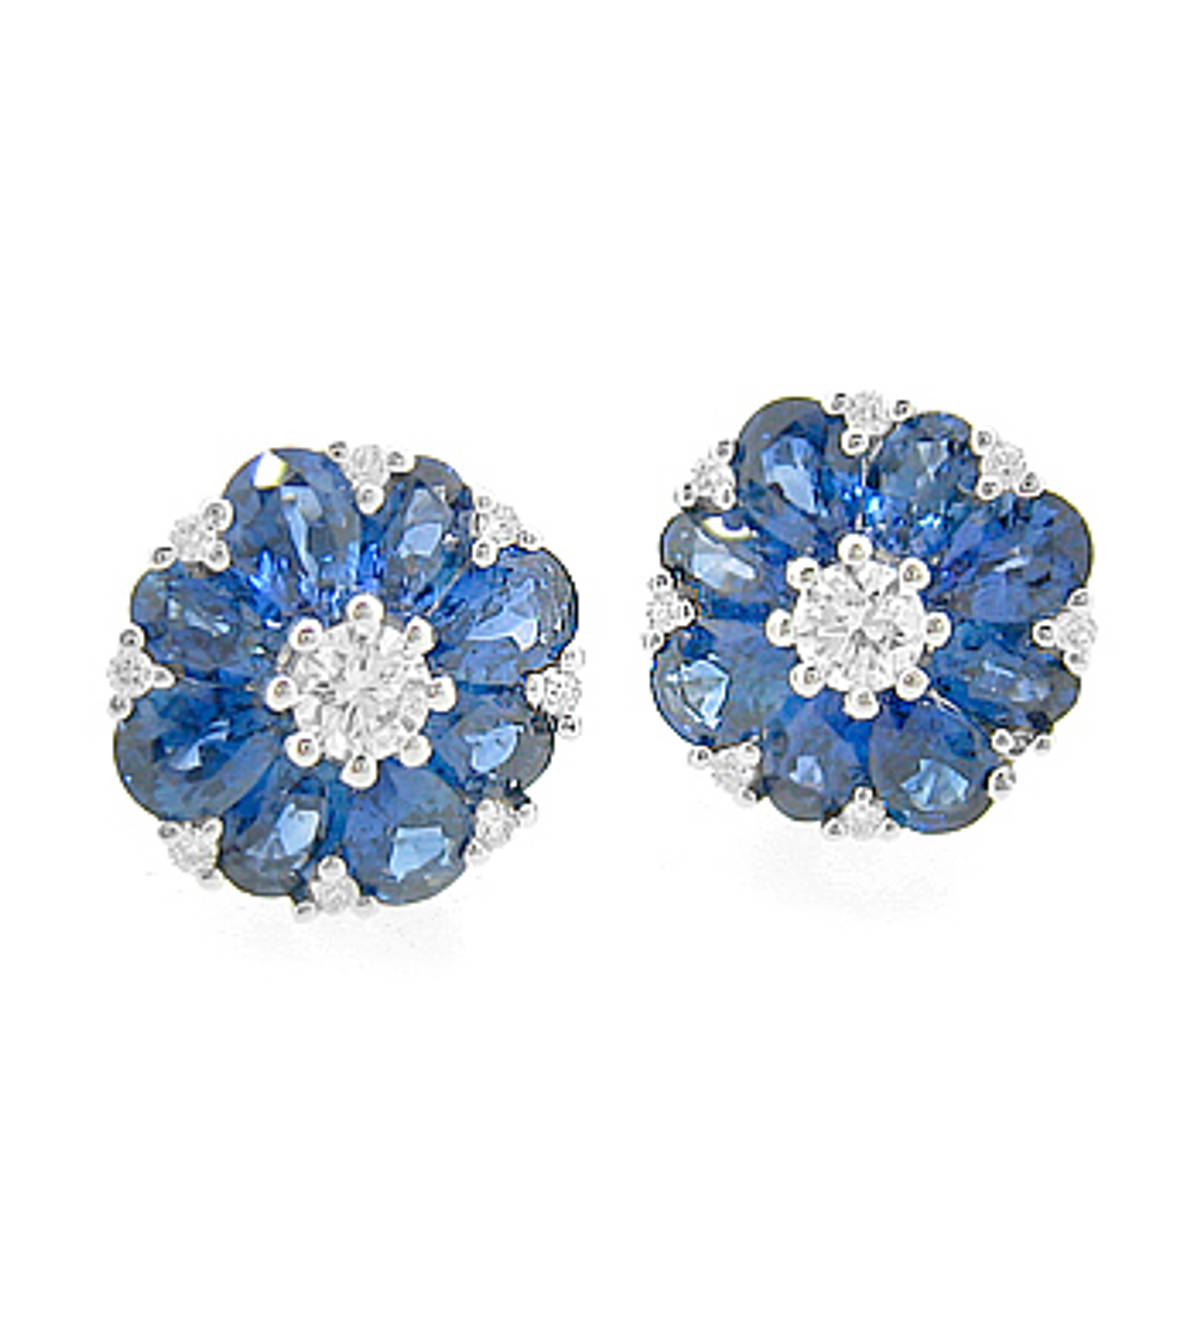 SAPPHIRE AND DIAMOND CLUSTER STUD EARRINGSPictured item: sapphire 2.35ct/diamonds 0.29ct set in 18k white gold